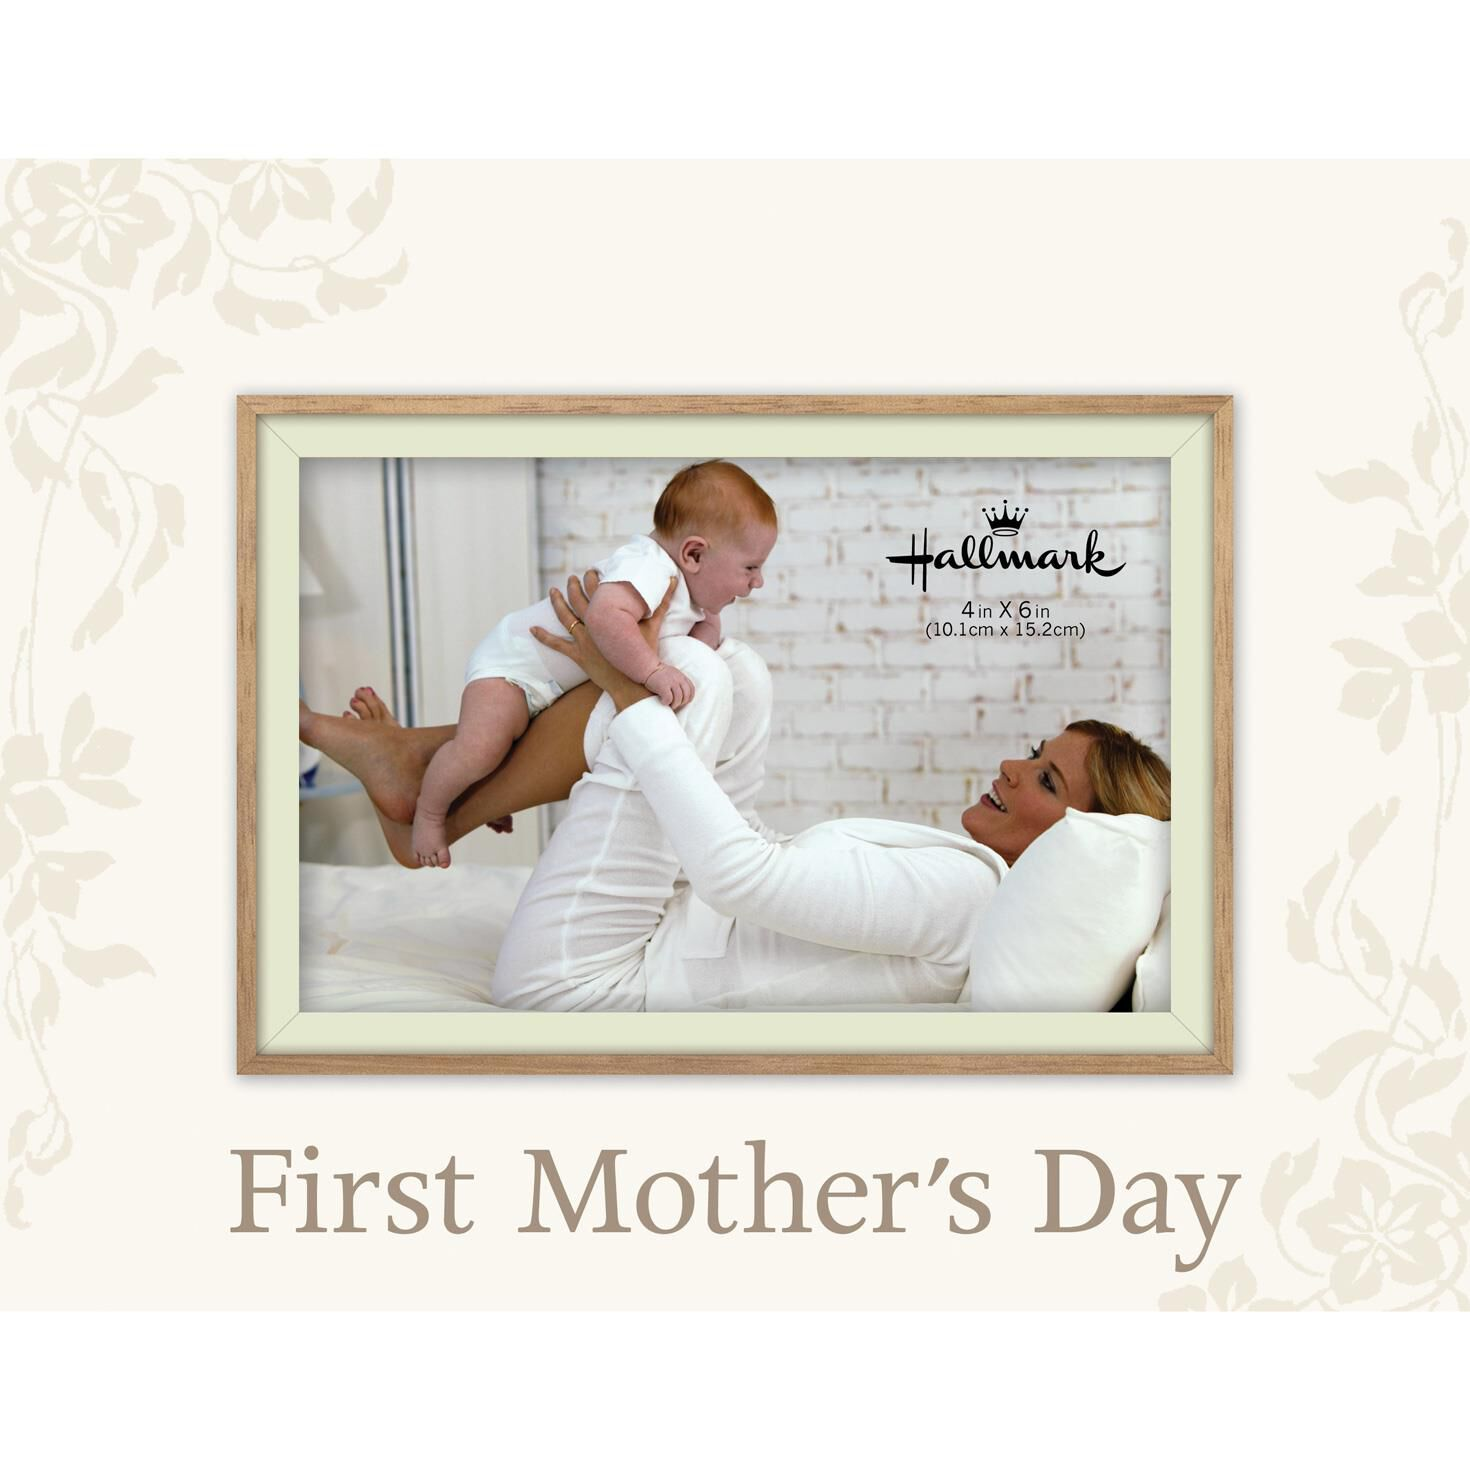 First Mother\'s Day Malden Picture Frame, 4x6 - Picture Frames - Hallmark